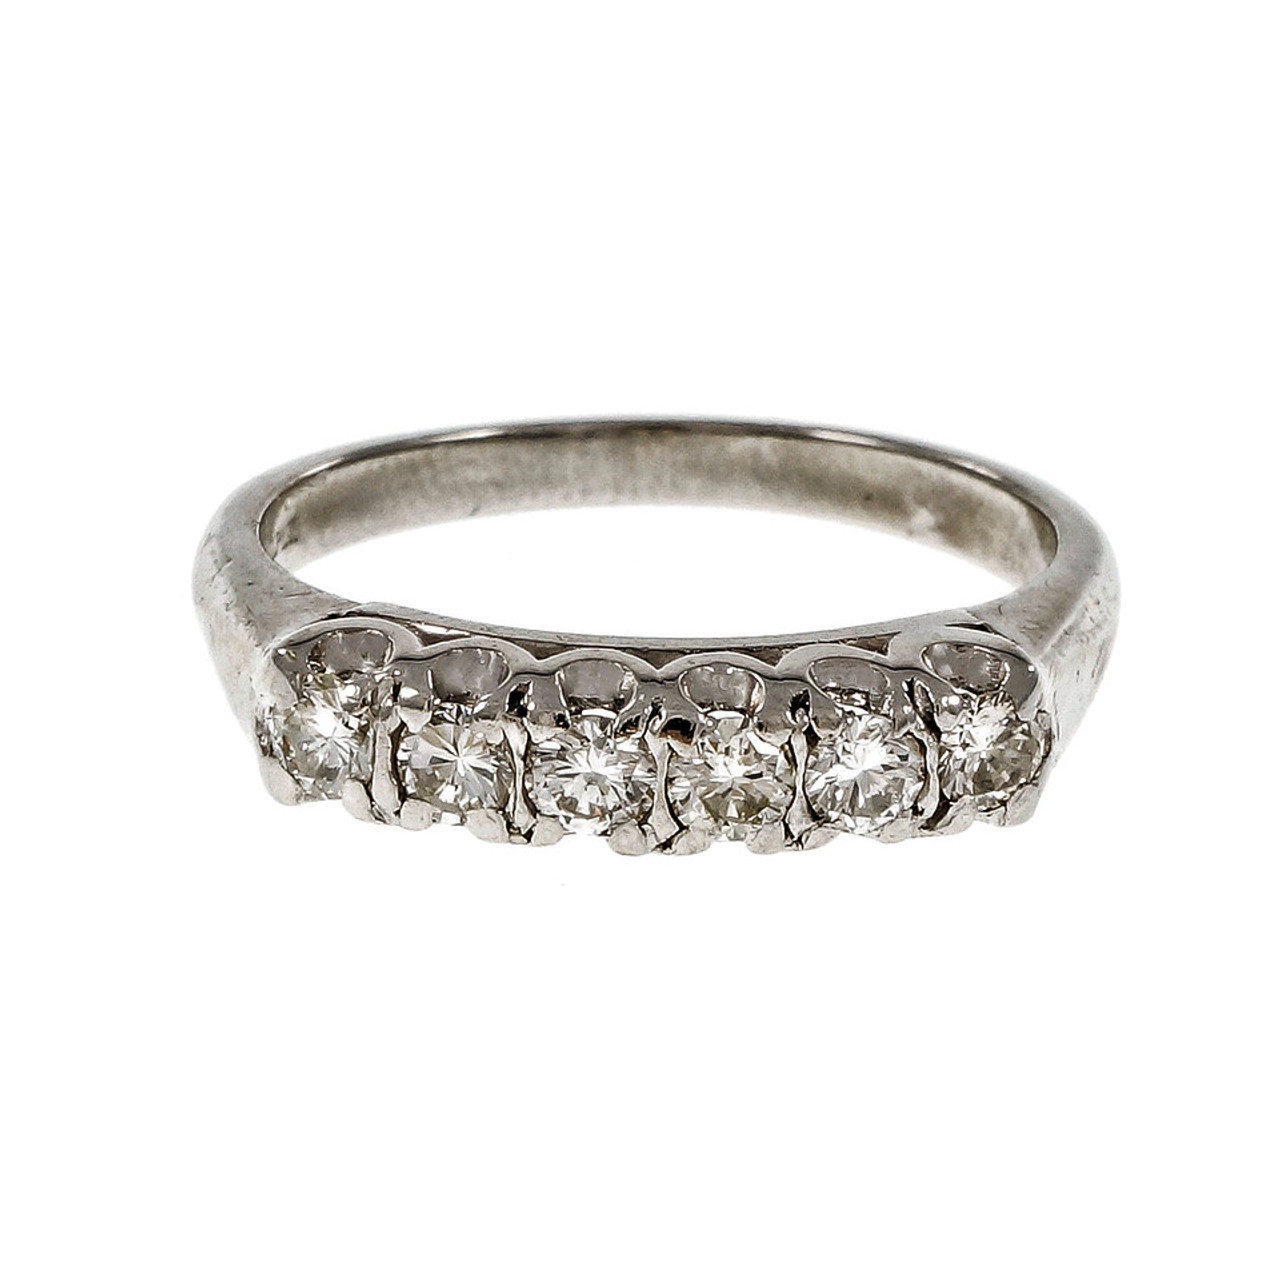 edeab4f5f71 Vintage Platinum Diamond Wedding Band Ring Fishtail Prongs -  petersuchyjewelers